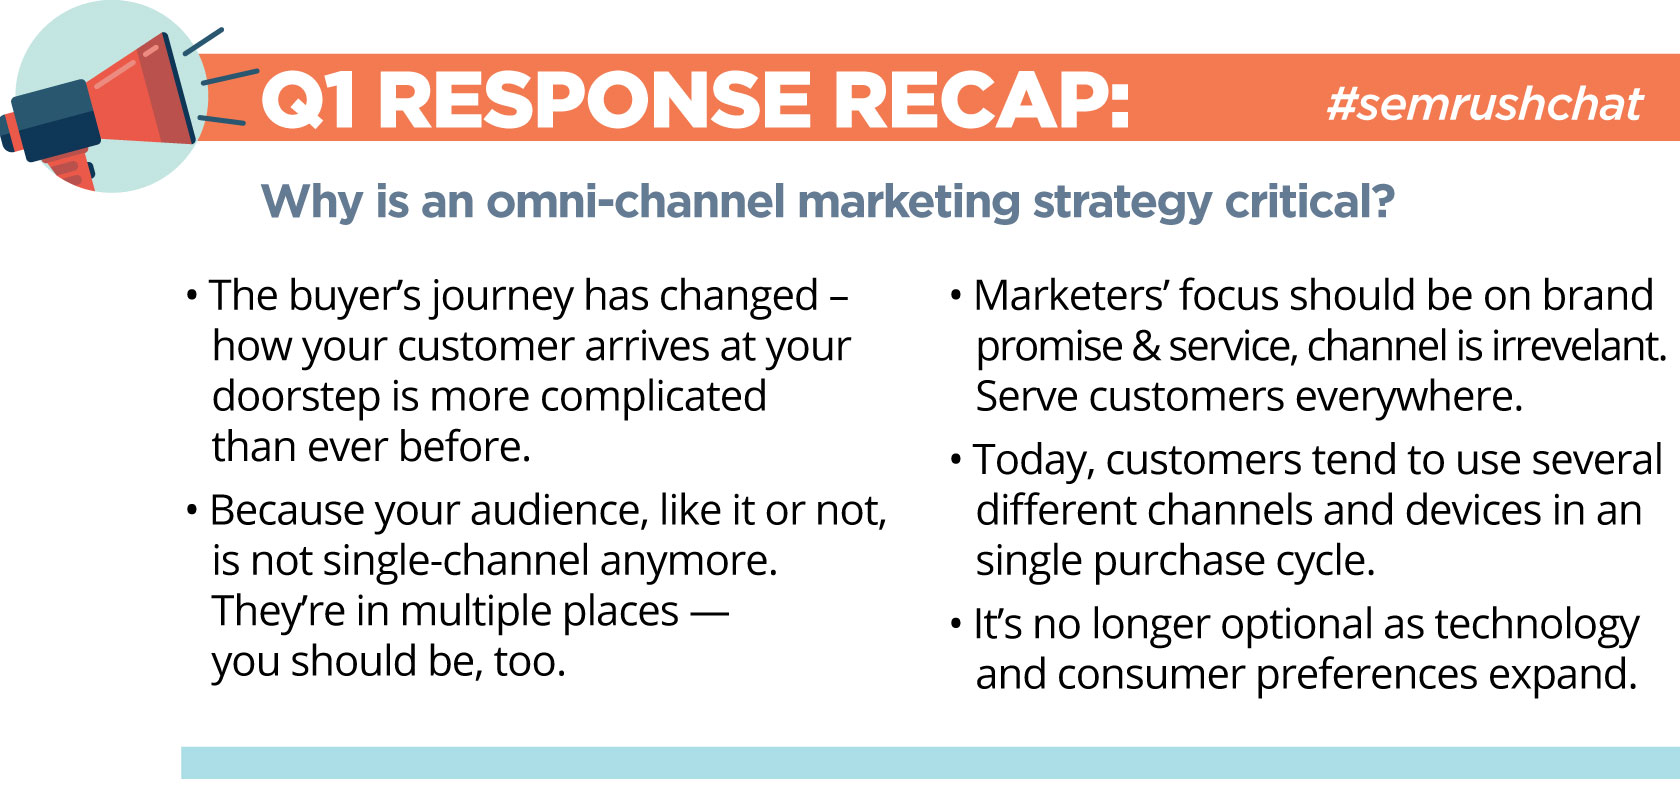 Everything You Need to Know About Omni-Channel Marketing #semrushchat. Image 0